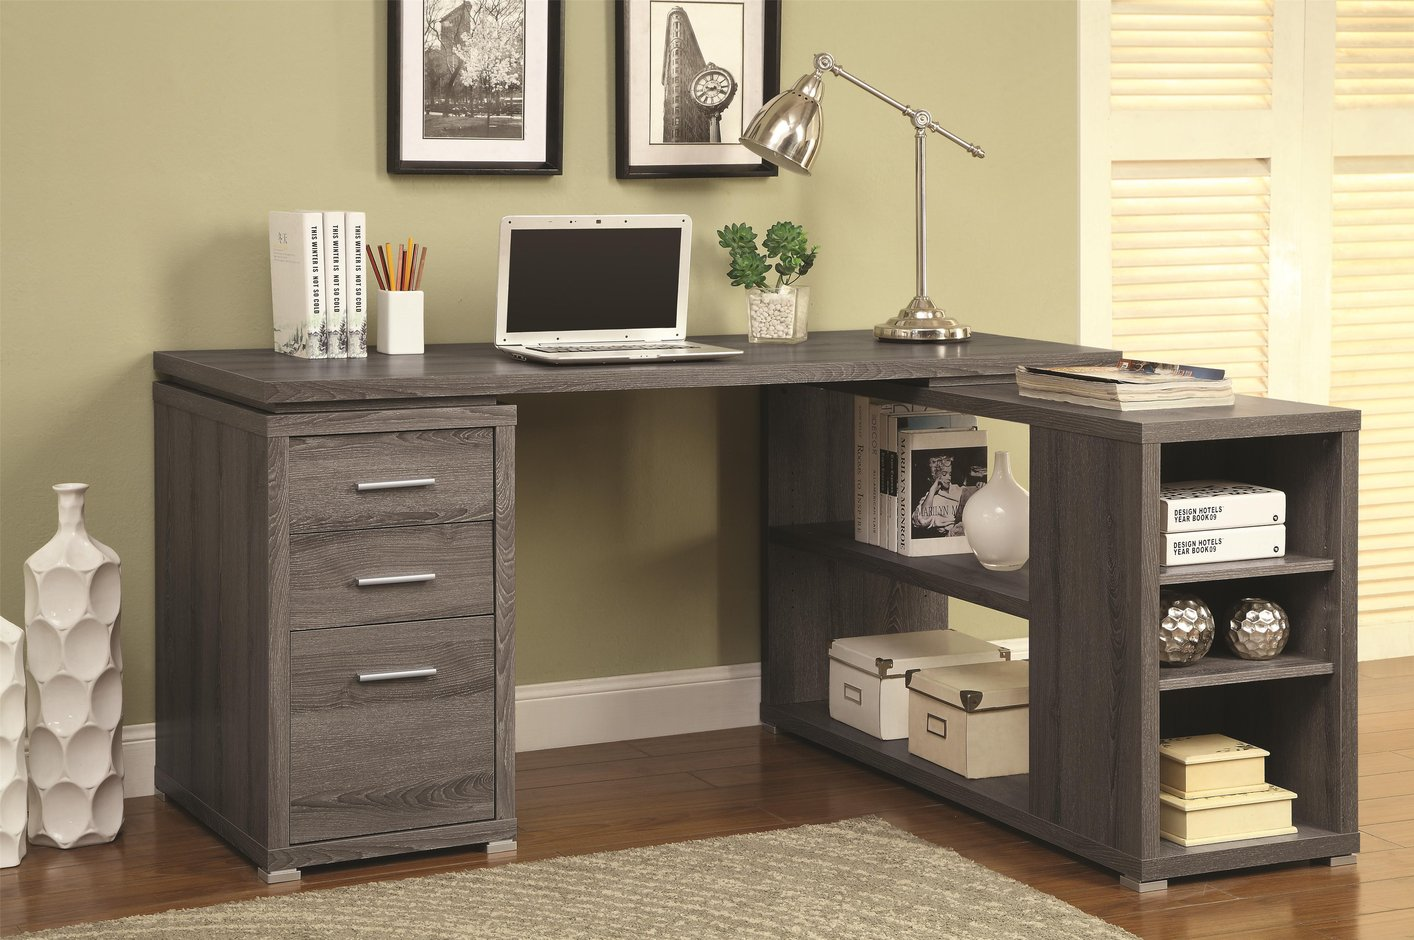 desk home chic office with furniture motif light rustic pine chair and typical designed simple gray for wood desks shelf of legs padded the